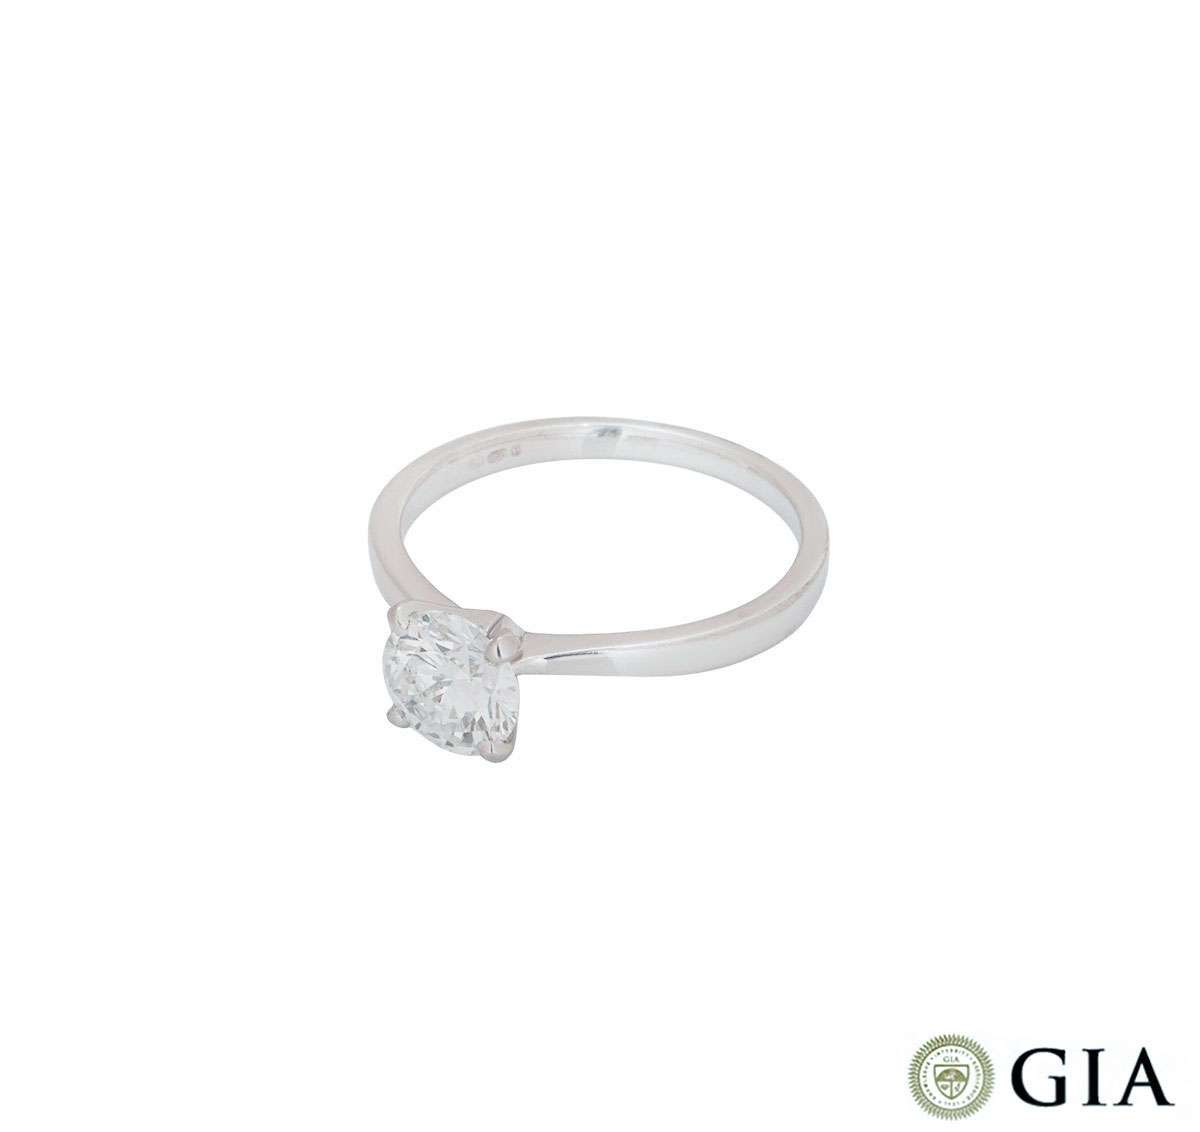 White Gold Round Brilliant Cut Diamond Ring 1.04ct E/VS1 XXX